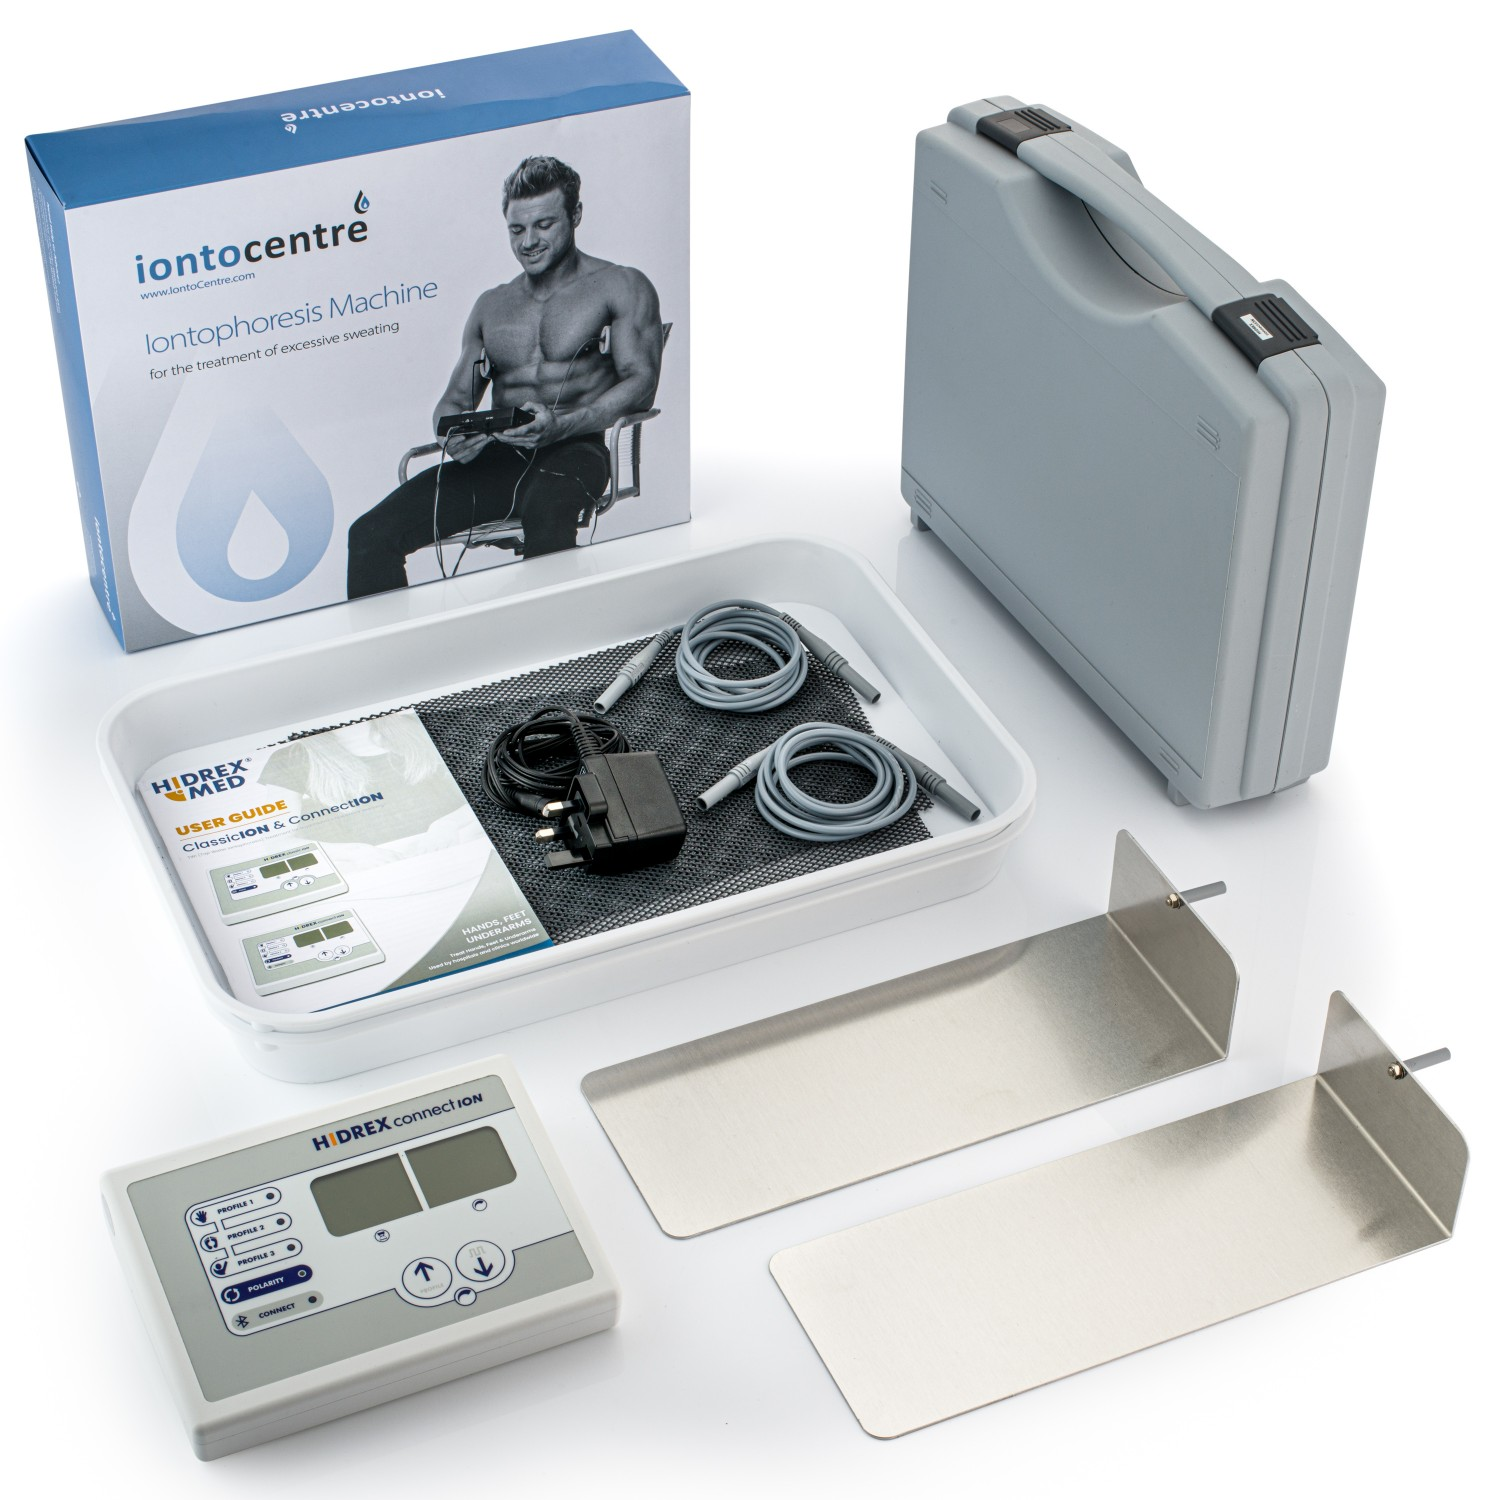 Hidrex ConnectION hands and feet iontophoresis